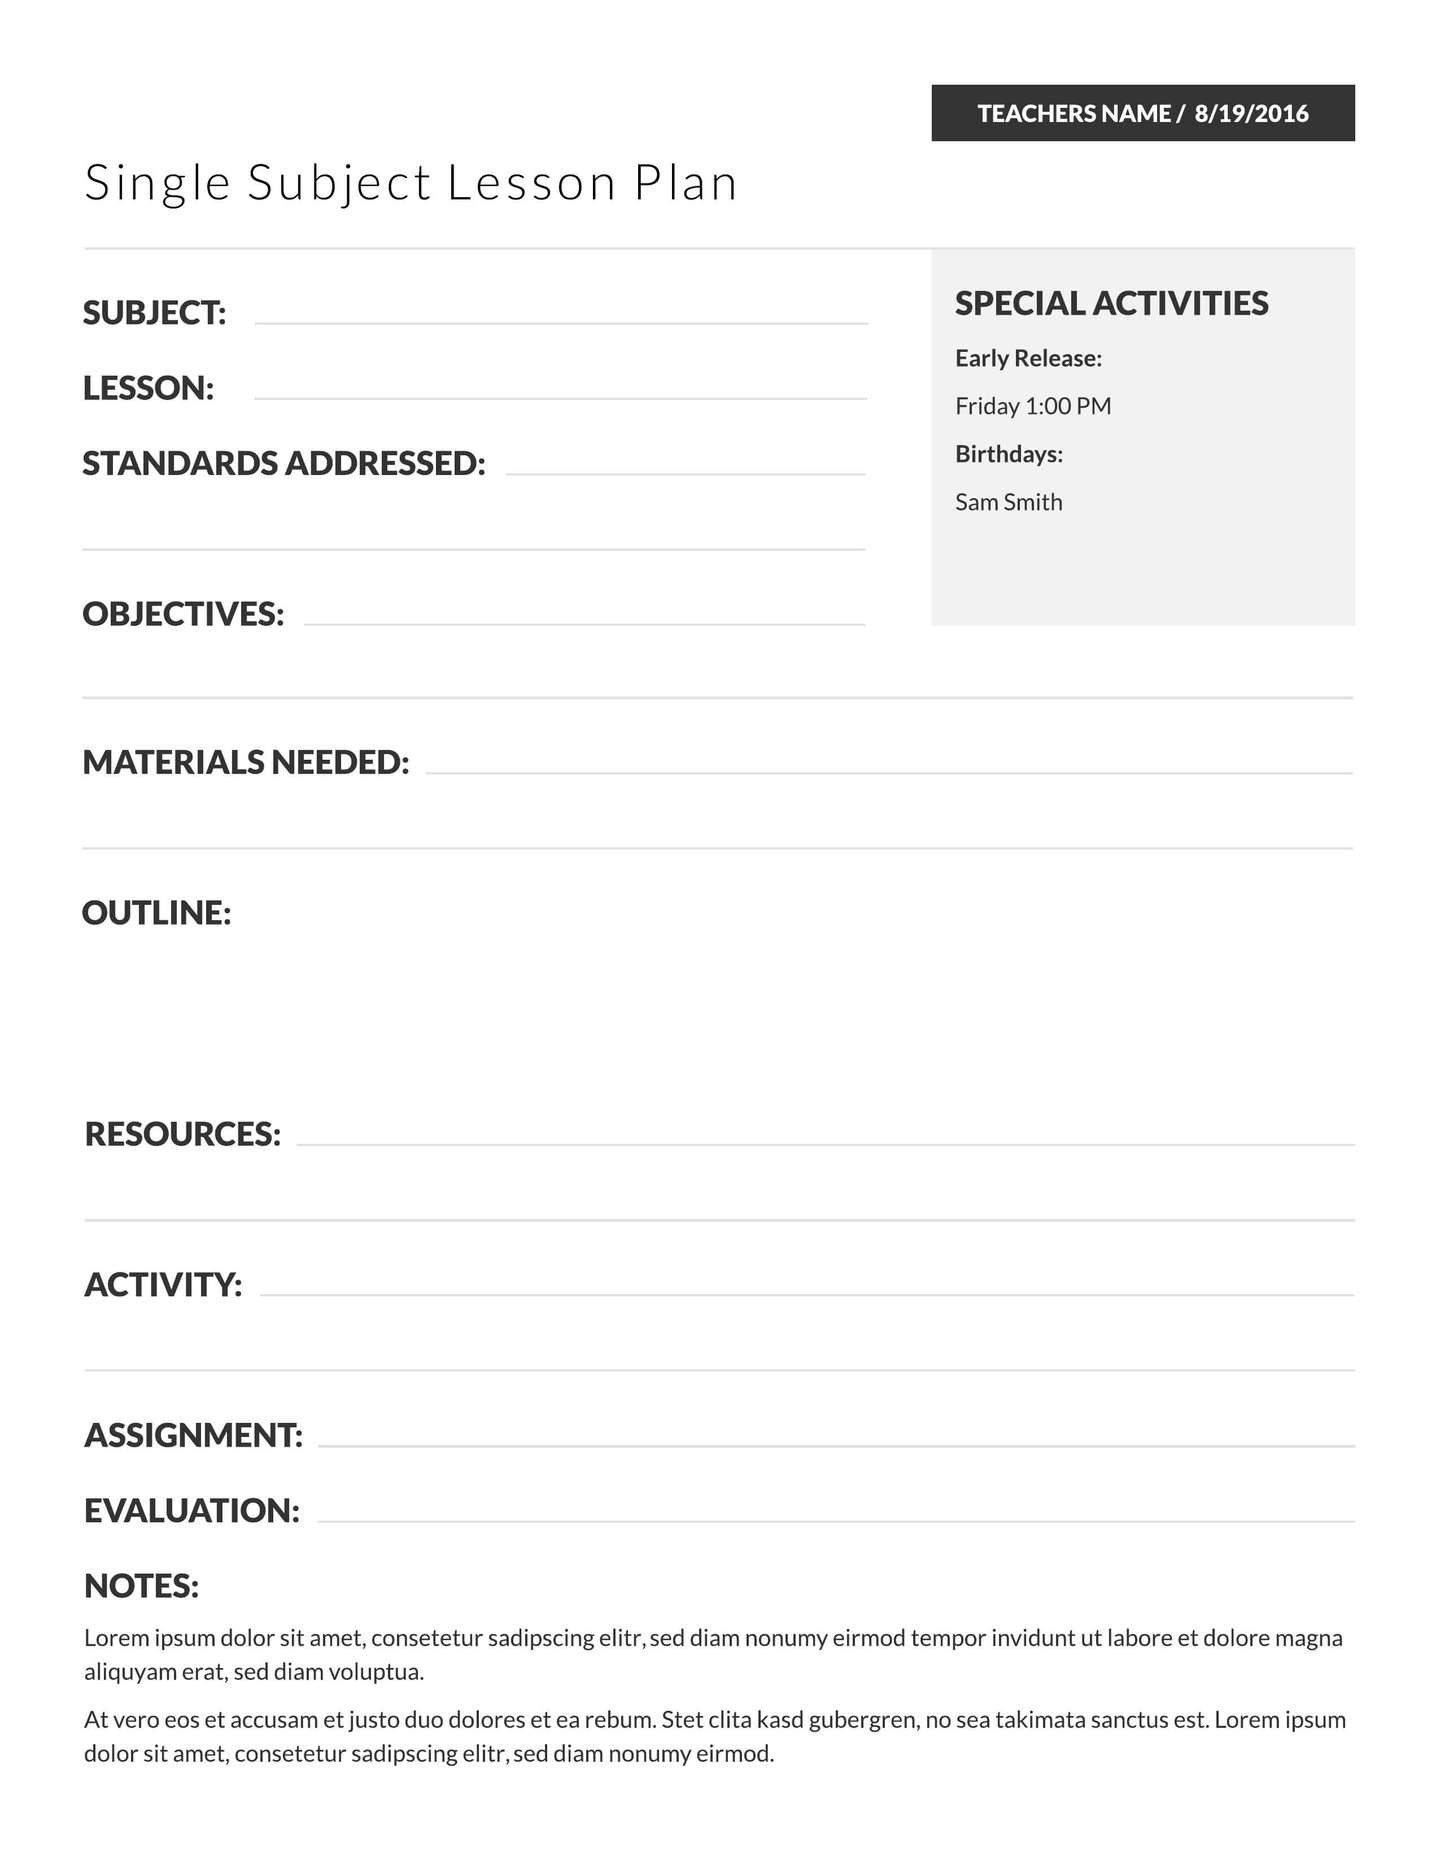 One Day Lesson Plan Template Elegant 18 Free Education Templates Teaching Mater Lesson Plan Templates Teacher Lesson Plans Template Lesson Plan Template Free One day lesson plan template